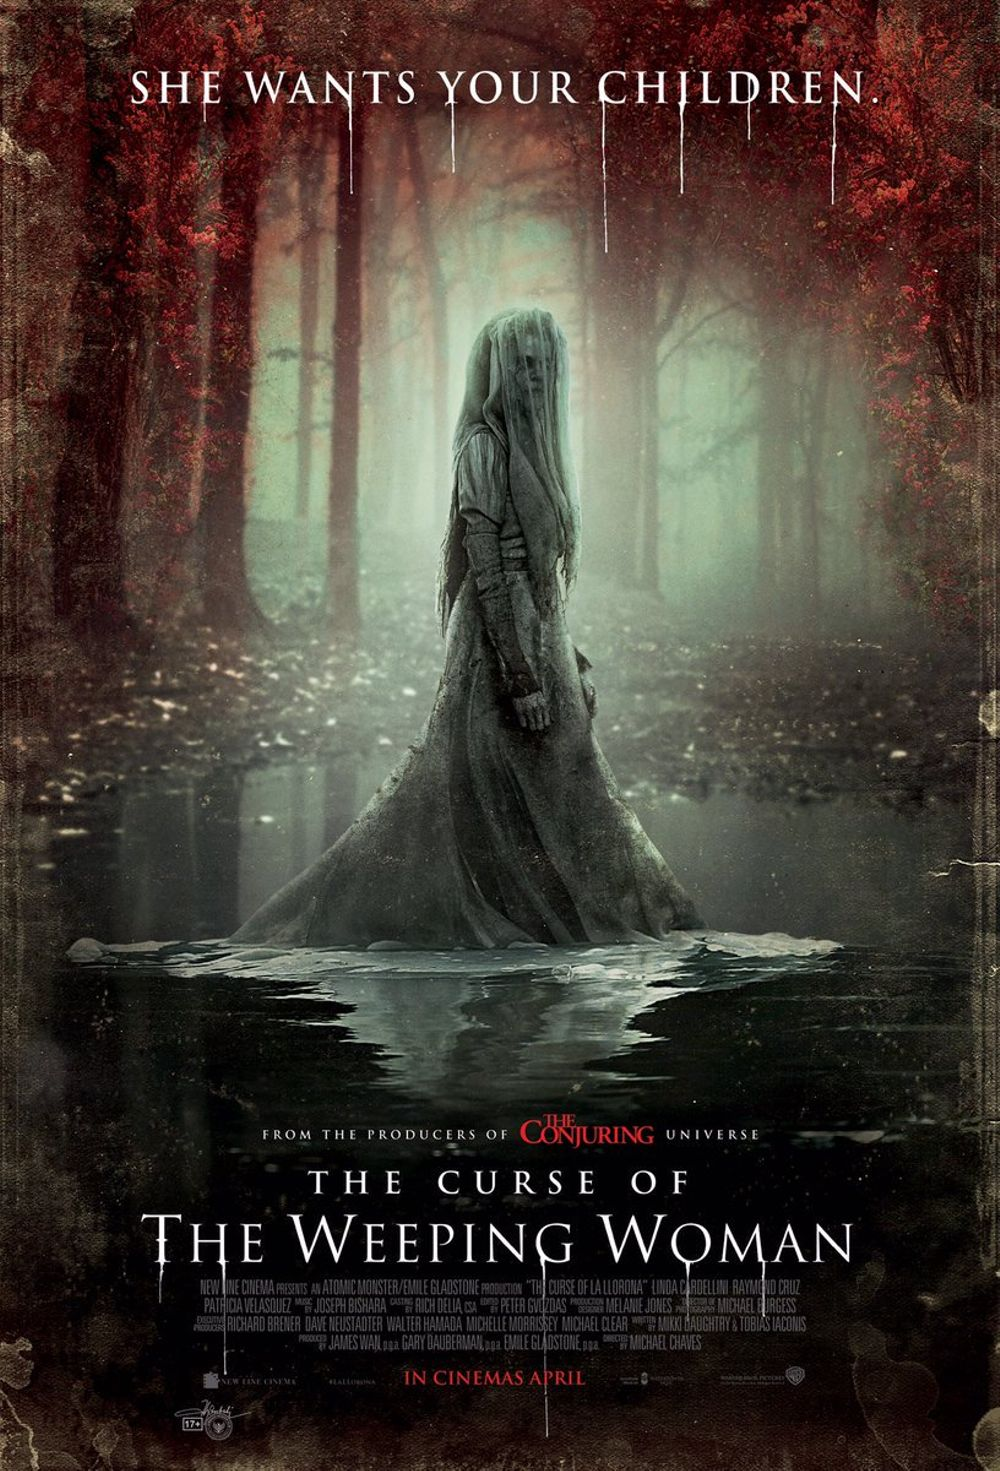 The Curse Of The Weeping Woman Movie Review